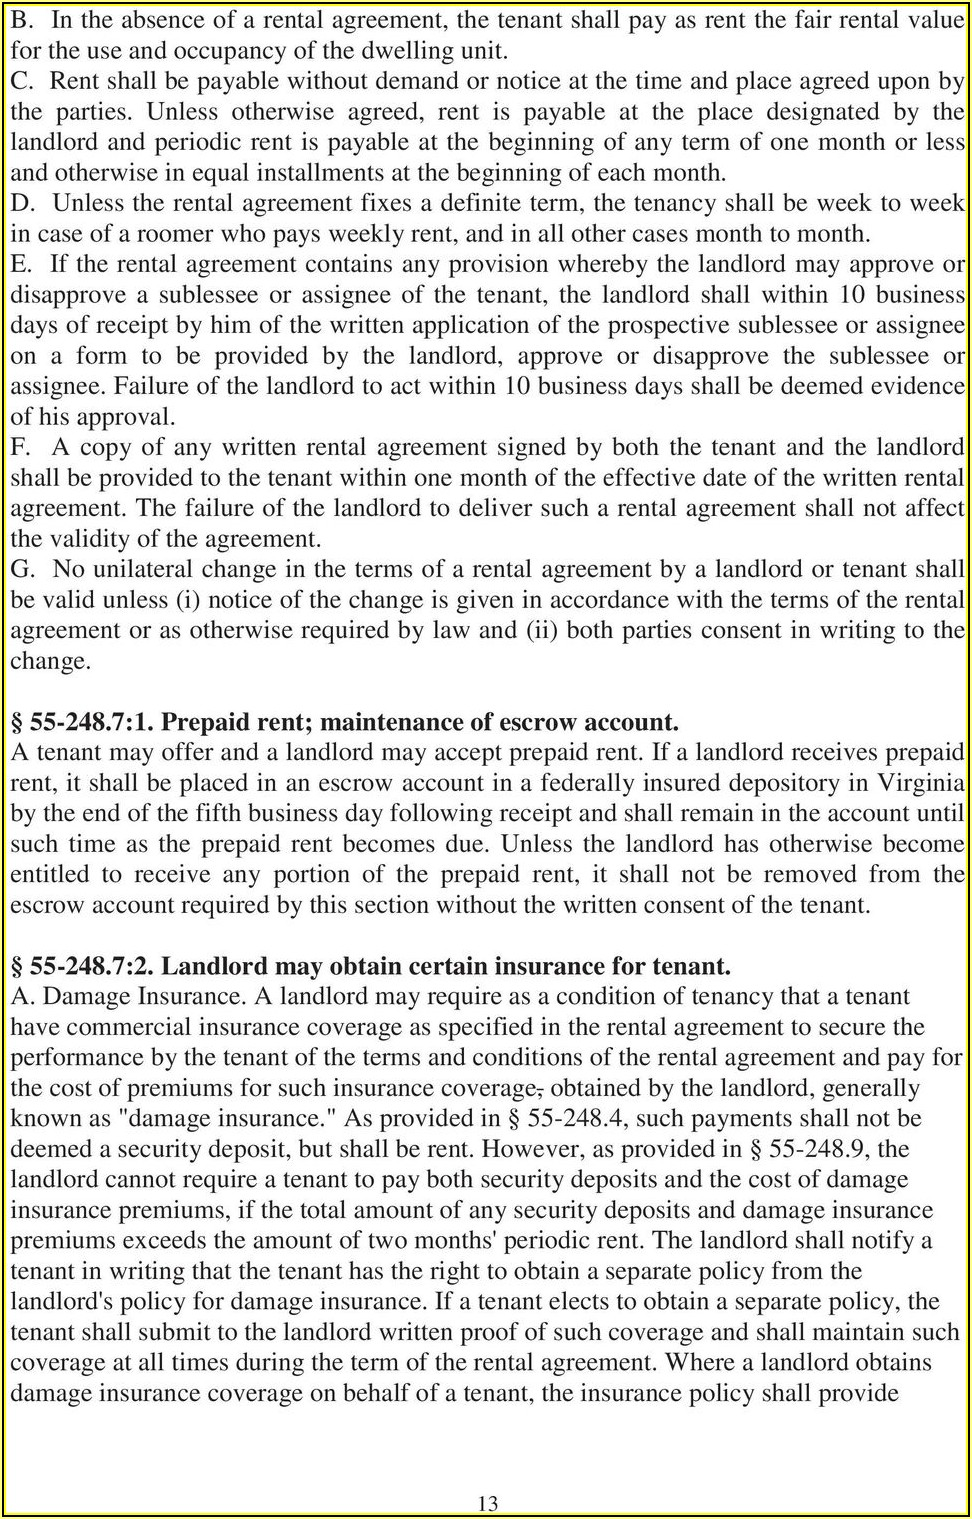 Vrlta Lease Agreement